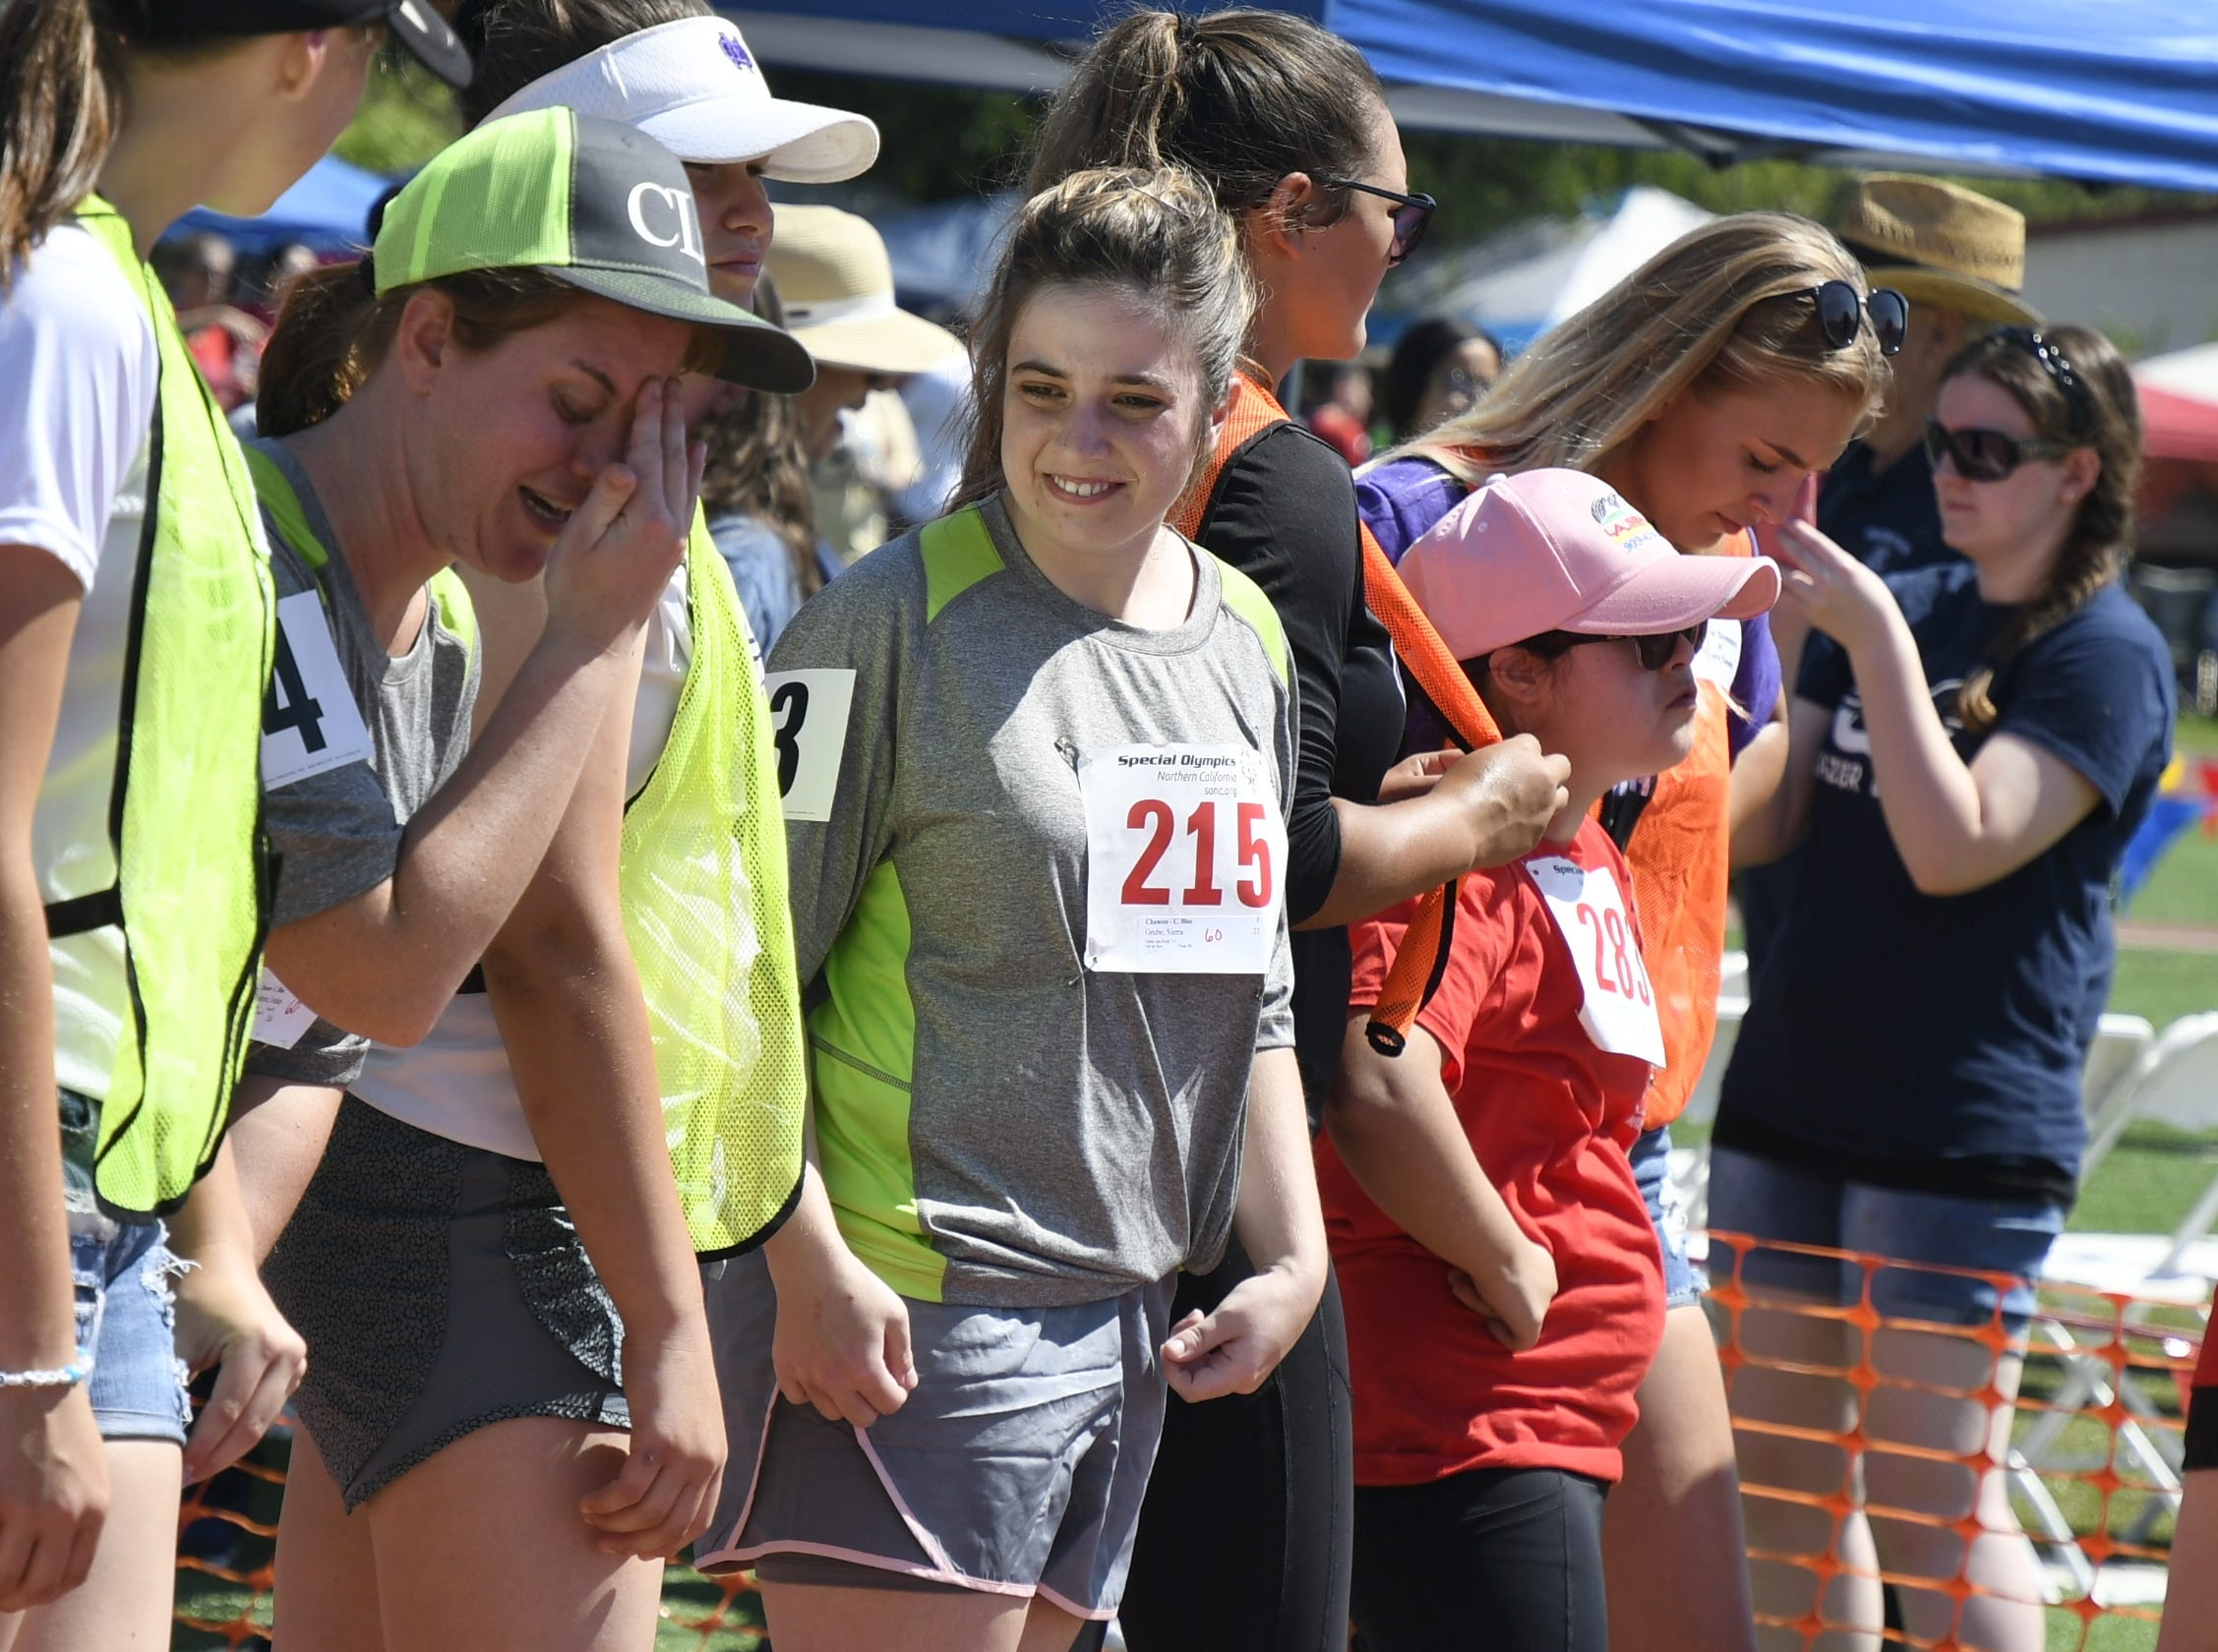 Nearly 1,000 athletes competed at the 2019 Special Olympics at Bob Mathias Stadium on Friday, April 26, 2019.